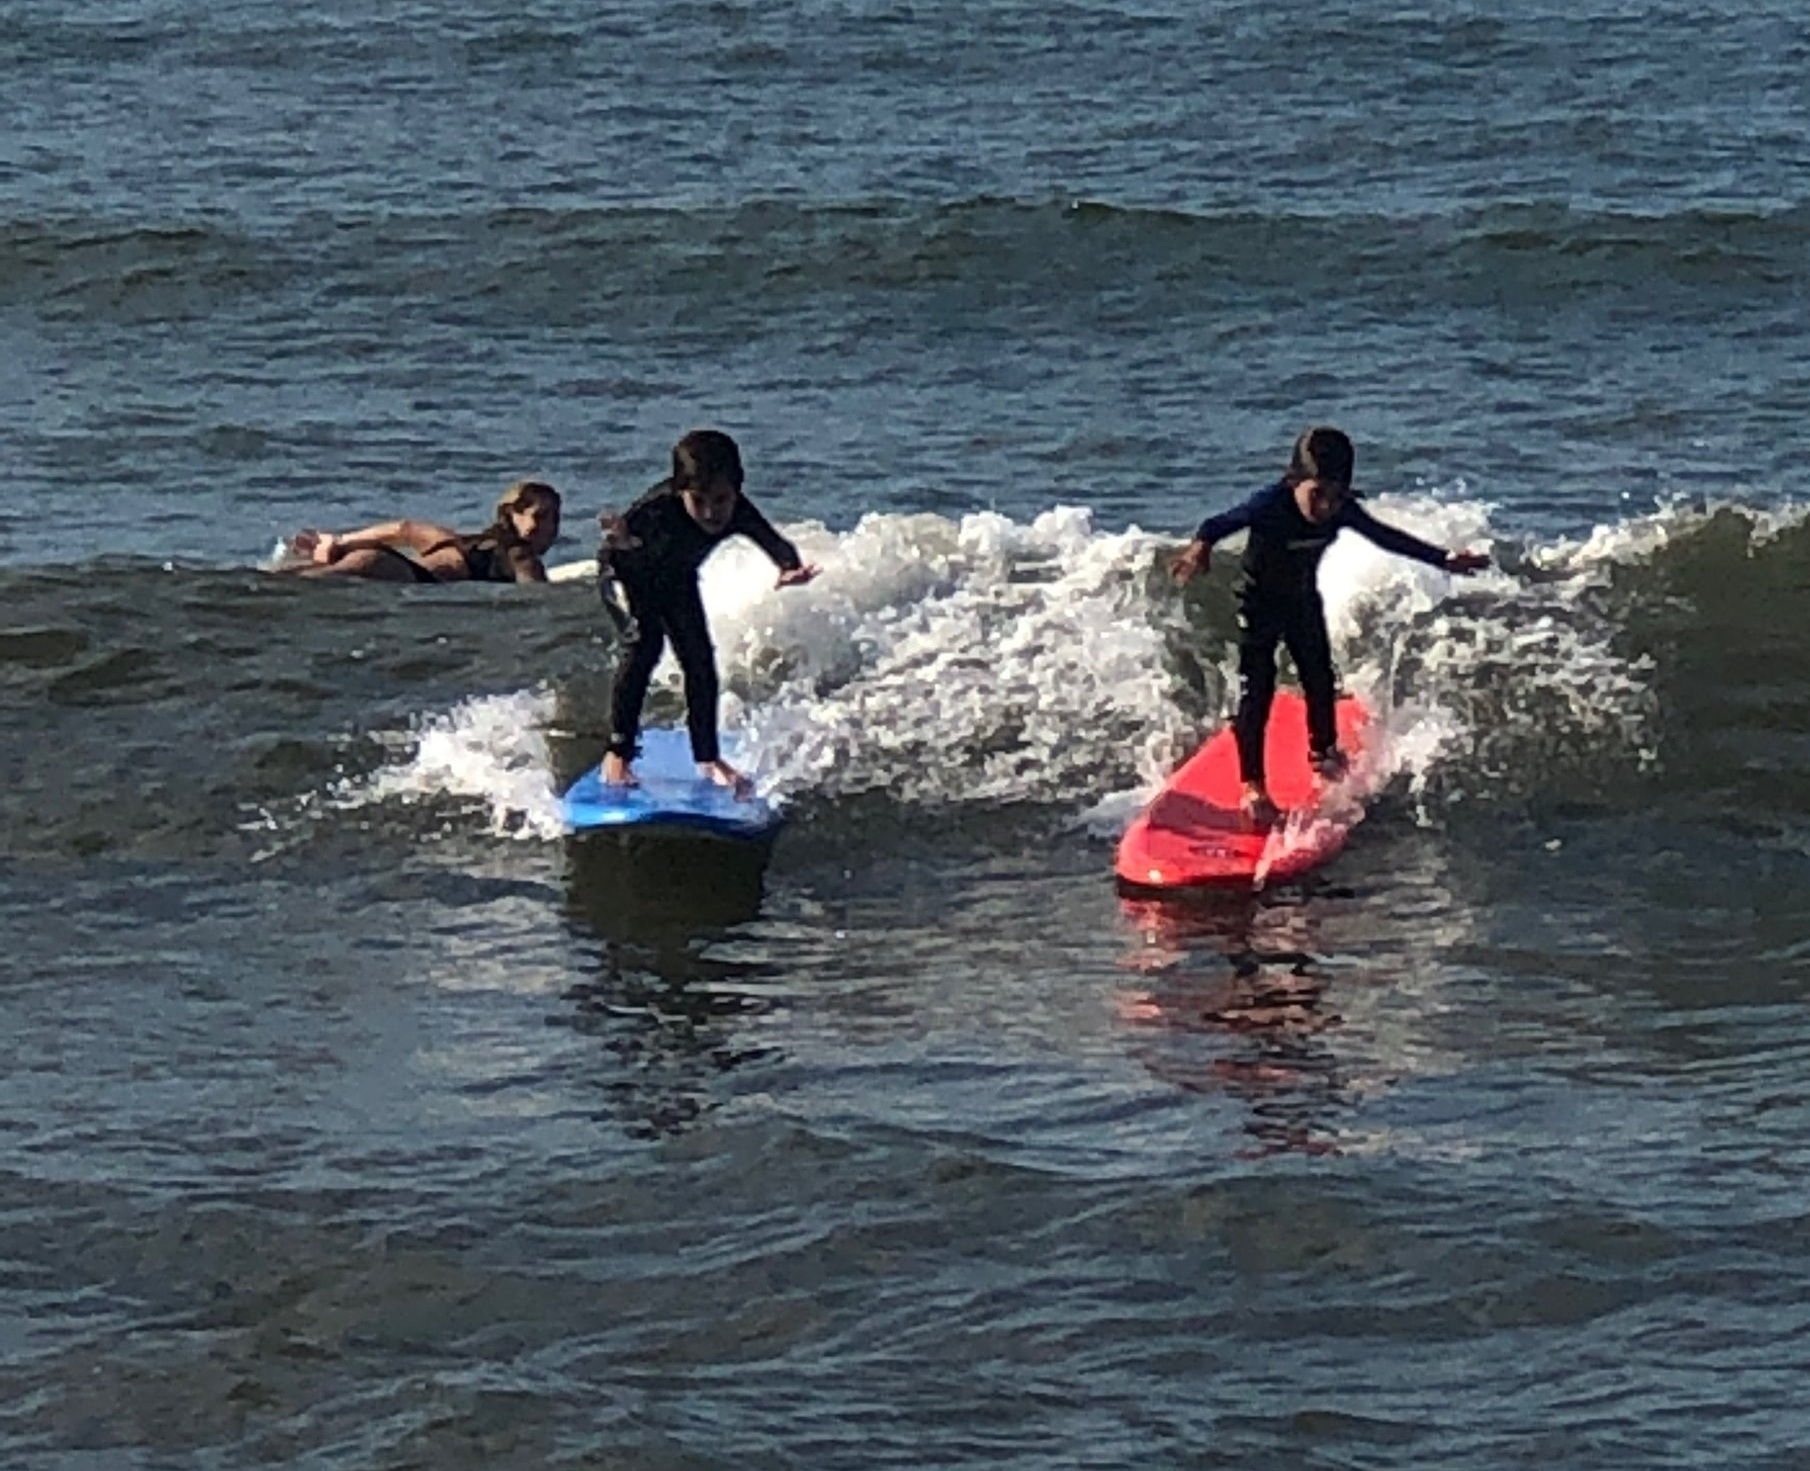 Thank you Elliot! - My boys tried another surf school but just did not get it until they came to Surf2Live. Now the boys are surfing on short boards and loving it. No crowds and pure surf time.